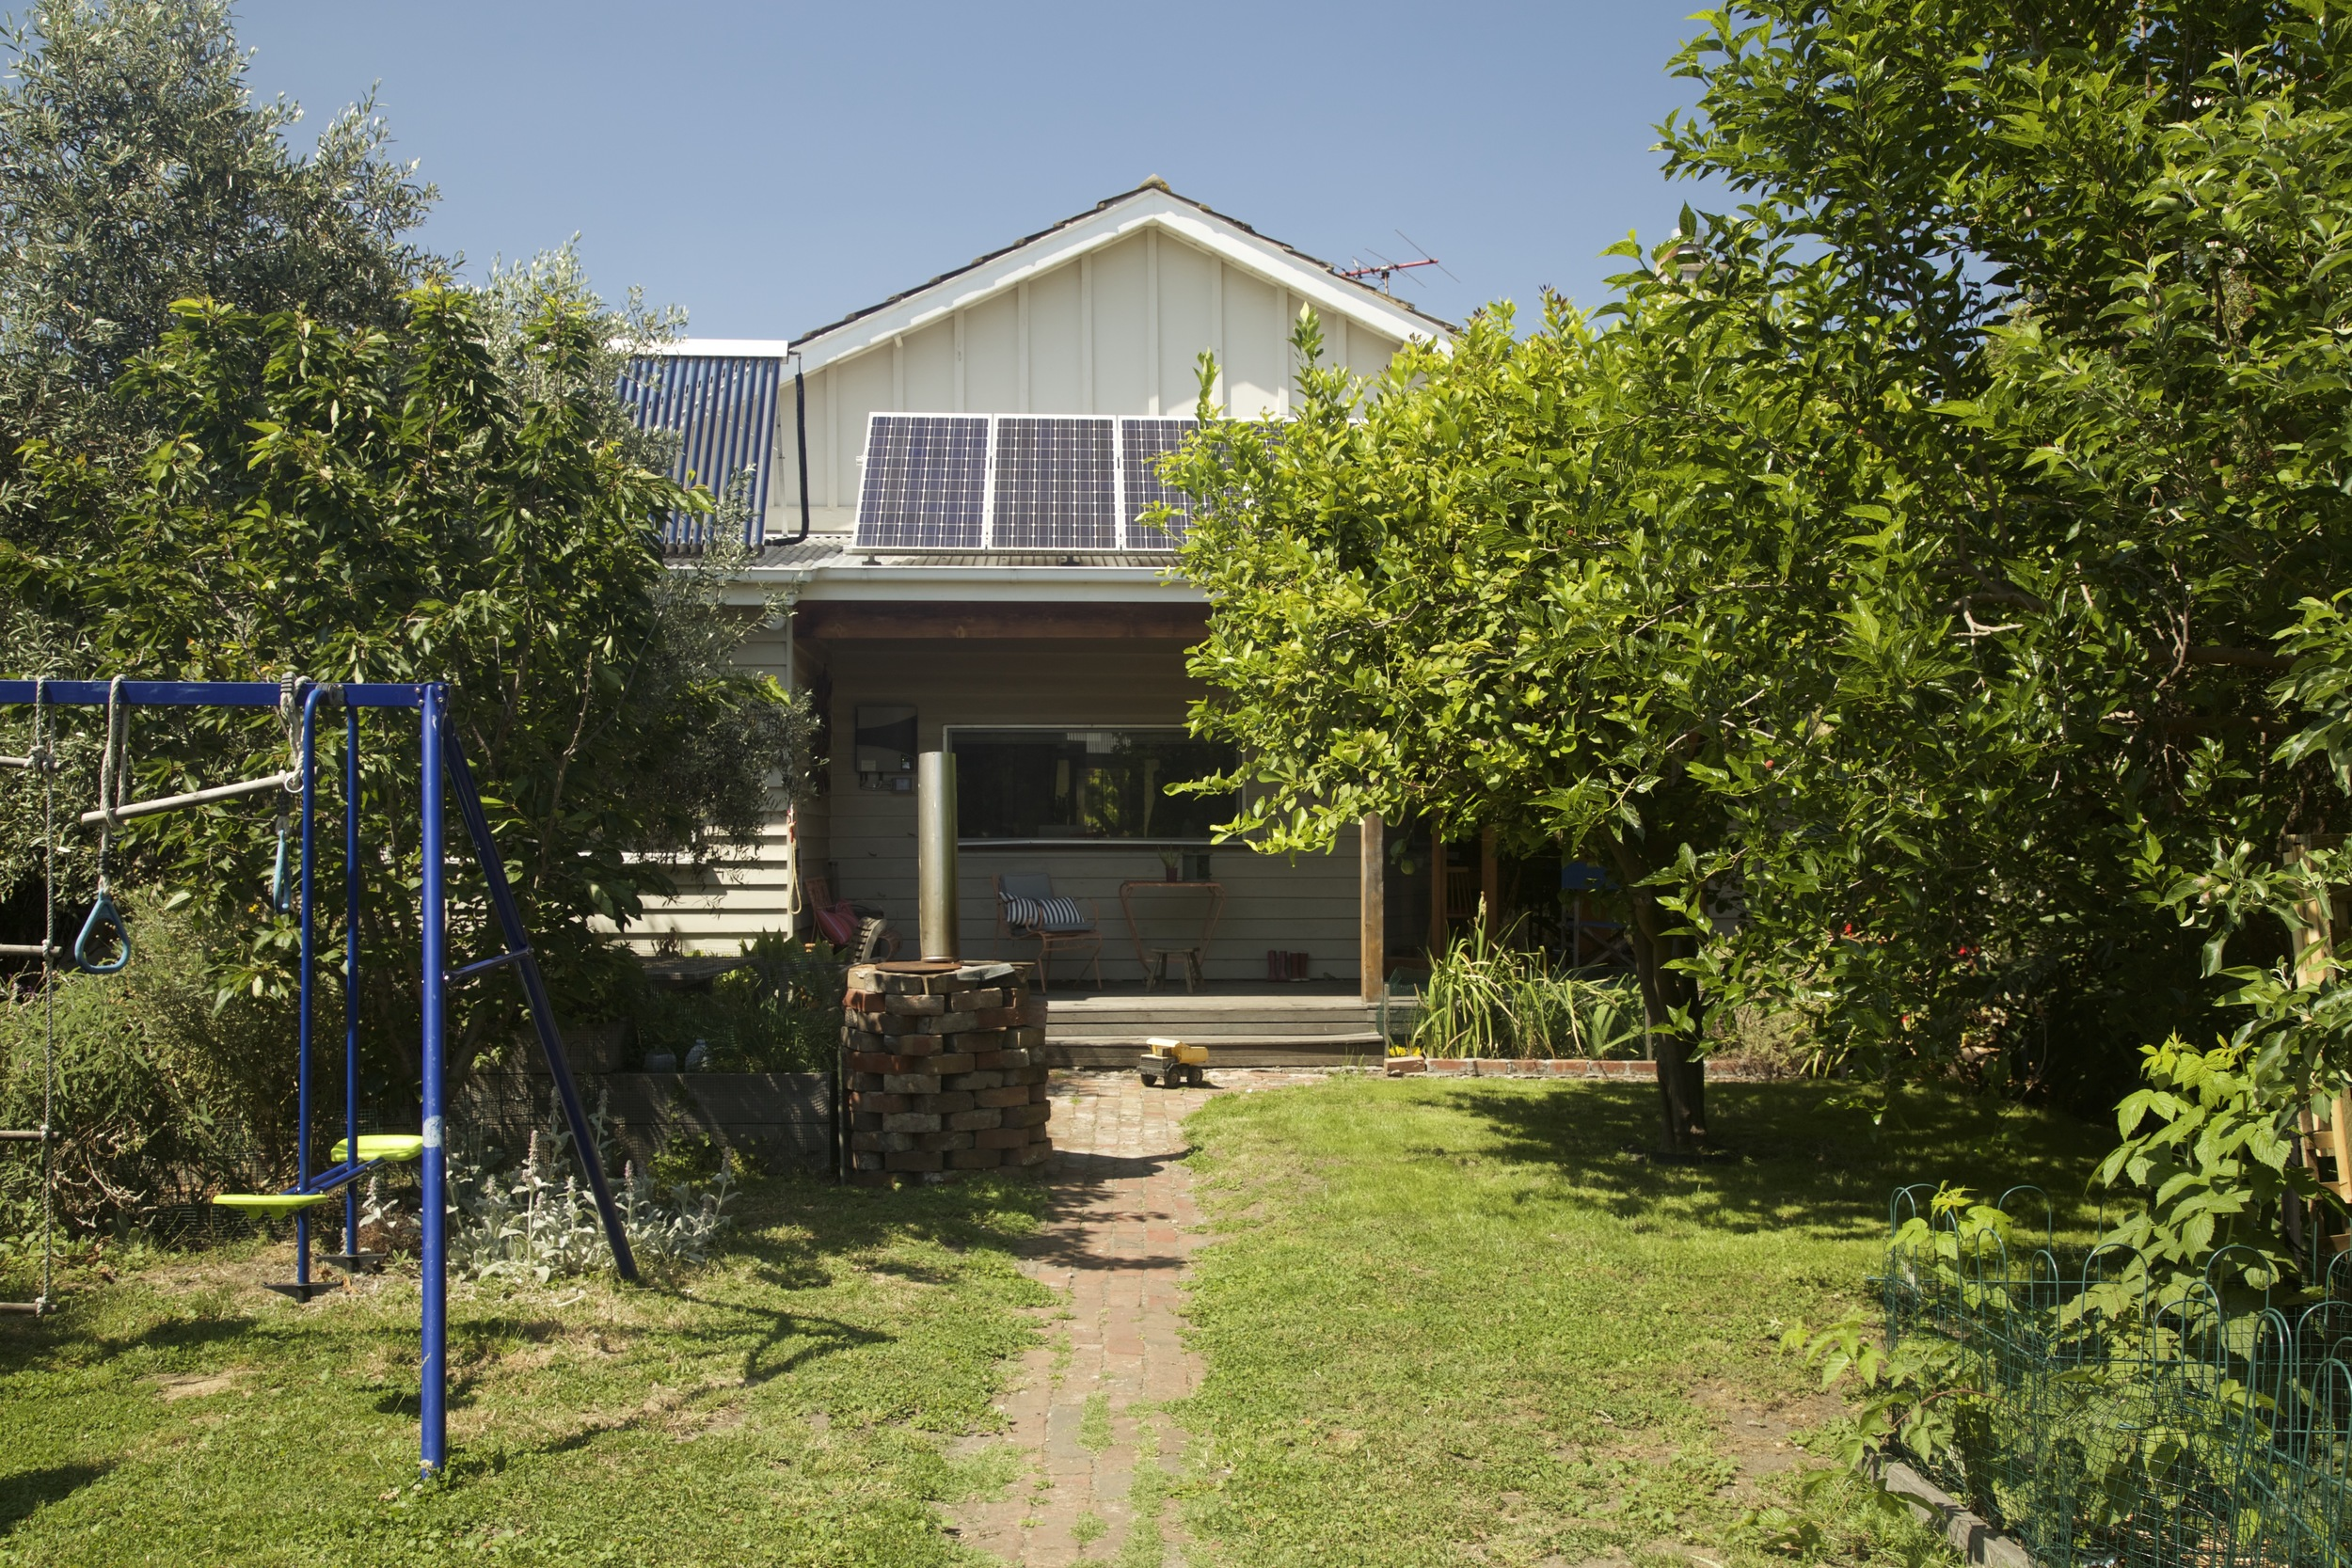 The owners of this inner north Victorian weatherboard have installed insulation, solar hot water, photovoltaic panels, rainwater tanks, efficient heating and ceiling fans since having a home sustainability consultation with Brave New Eco.